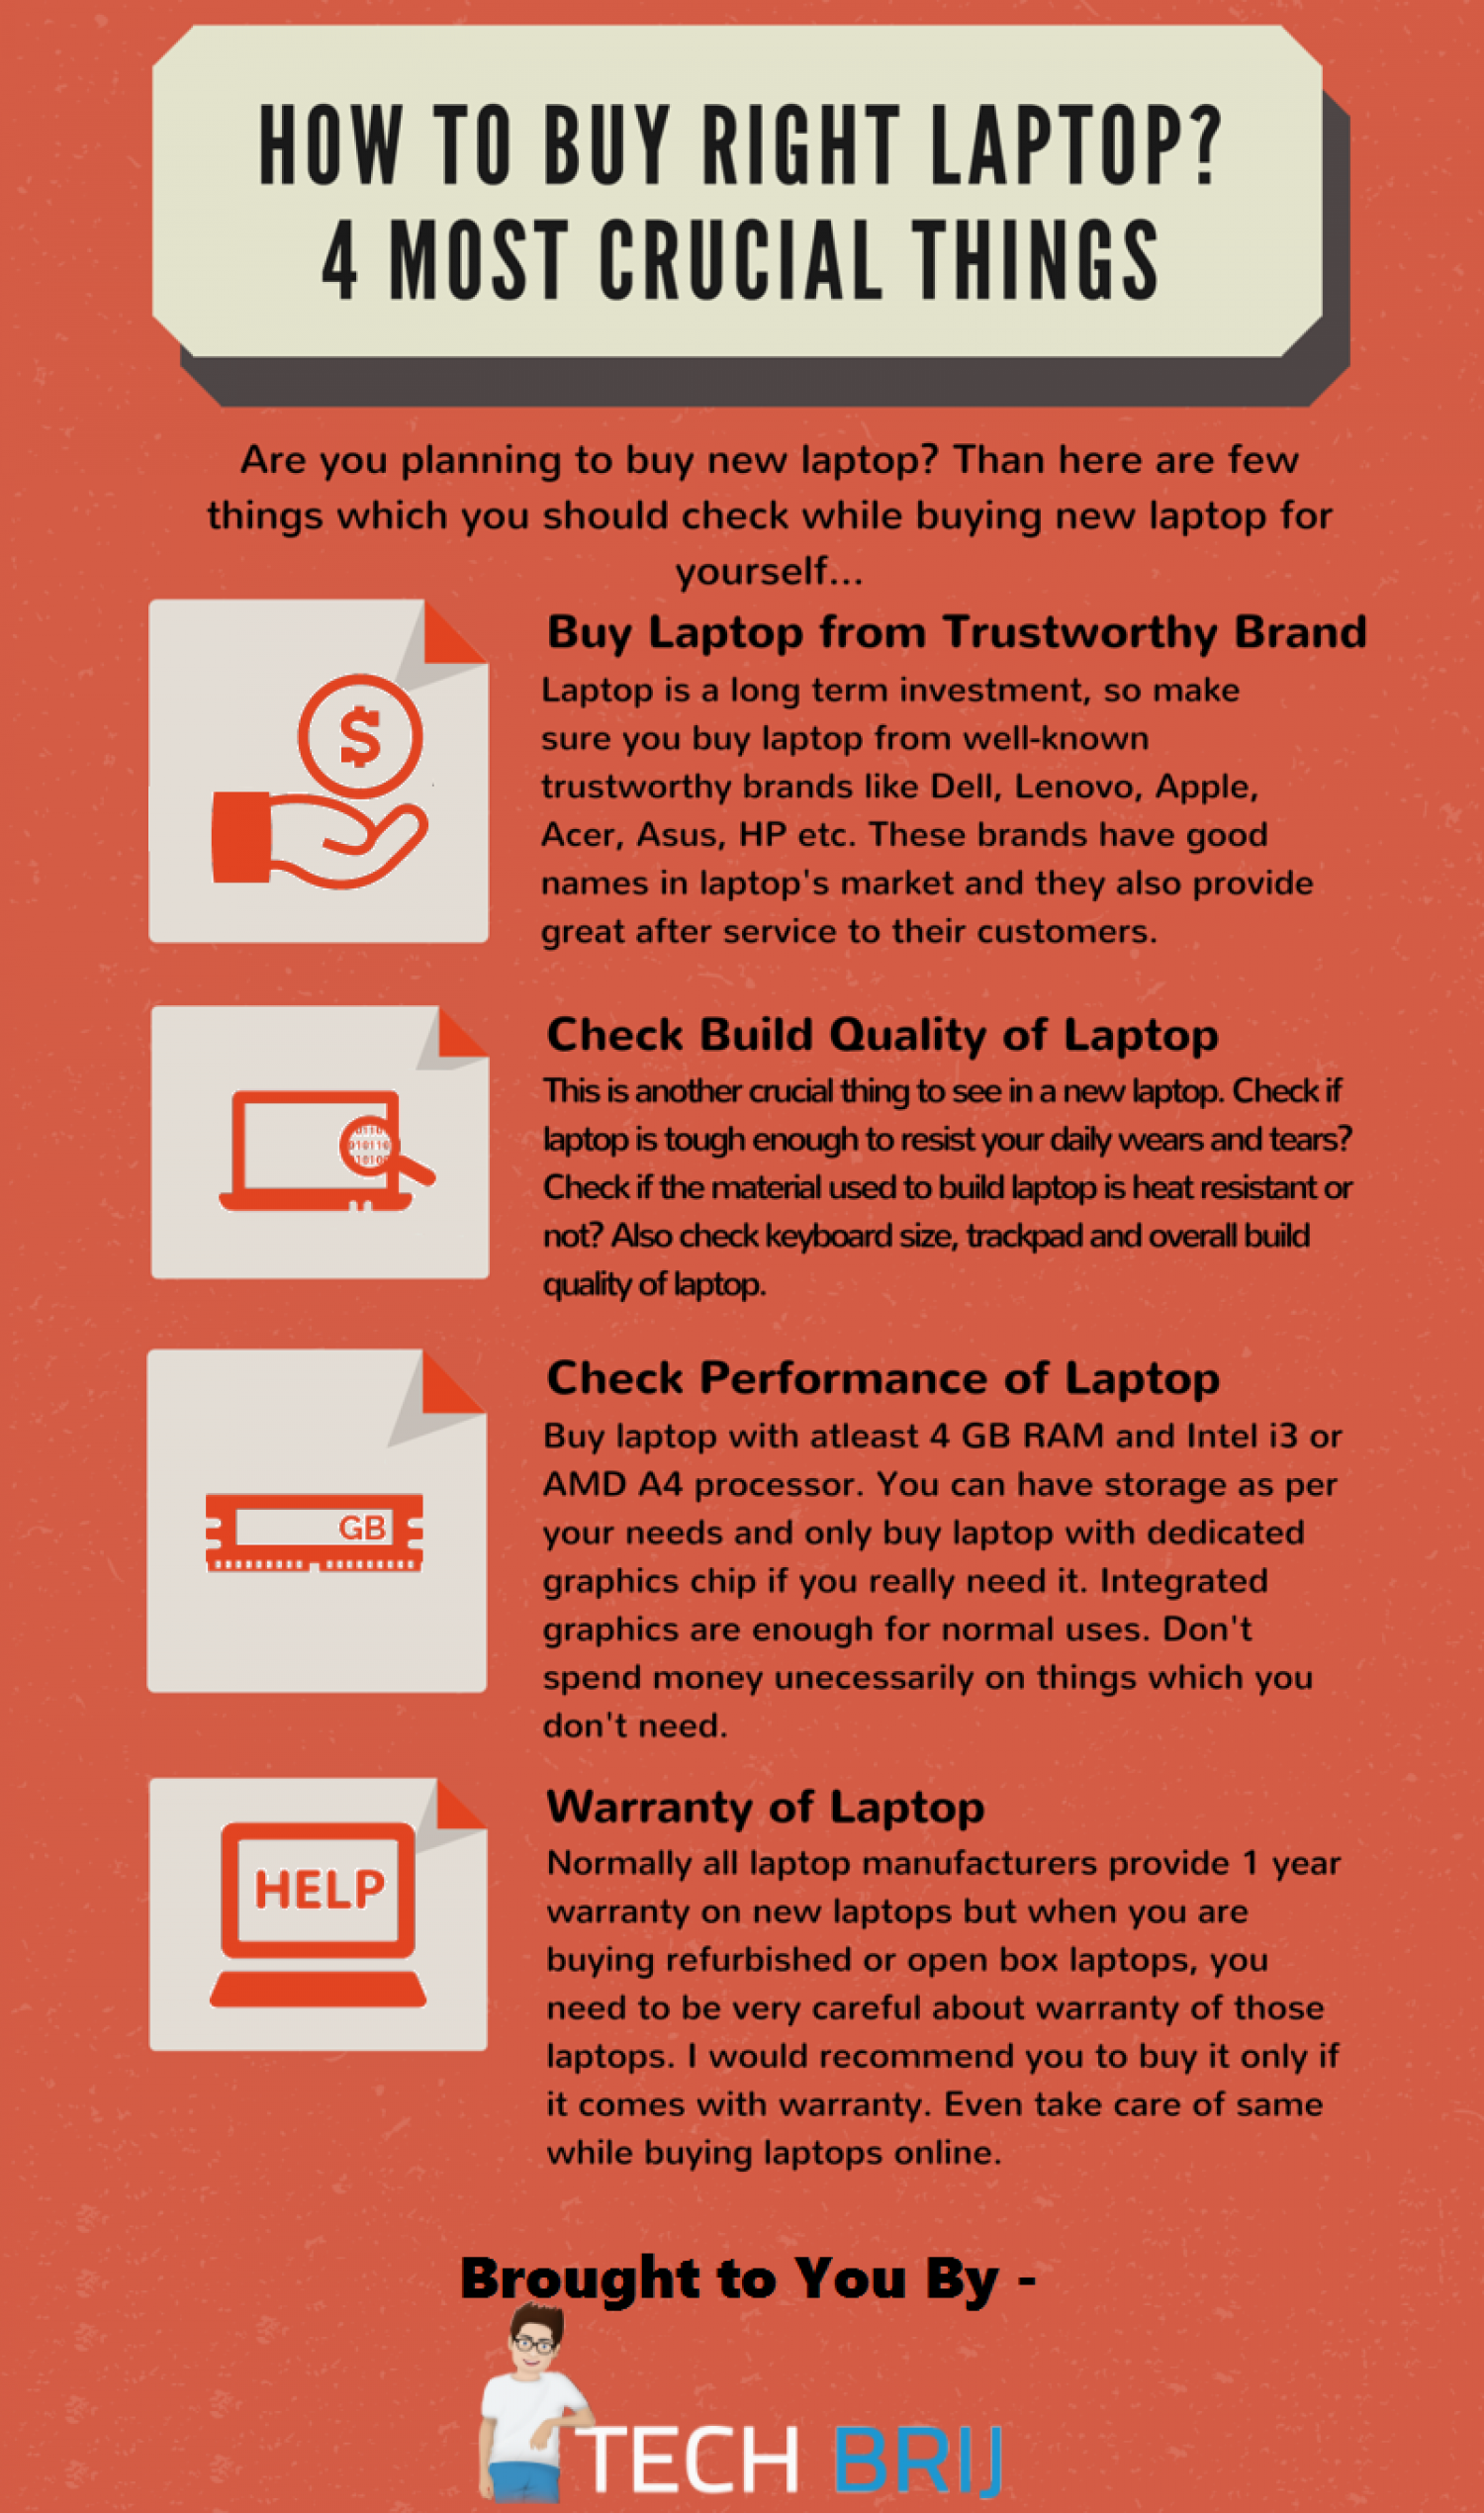 How to Buy Right Laptop? Infographic